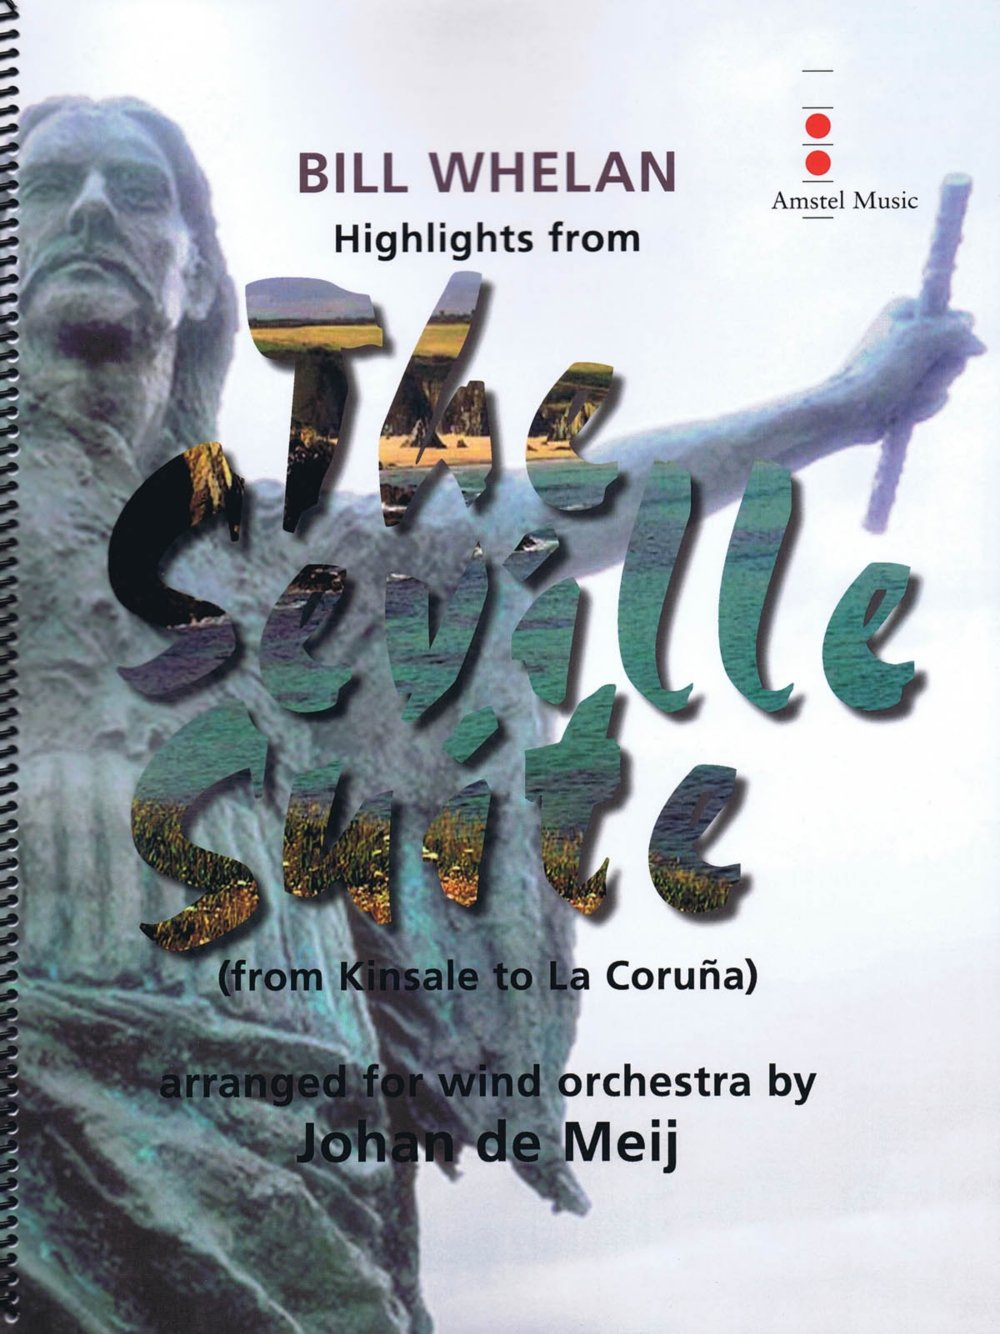 Read Online Amstel Music Highlights from The Seville Suite (from Kinsale to La Coruna) Concert Band Level 4 by Johan de Meij pdf